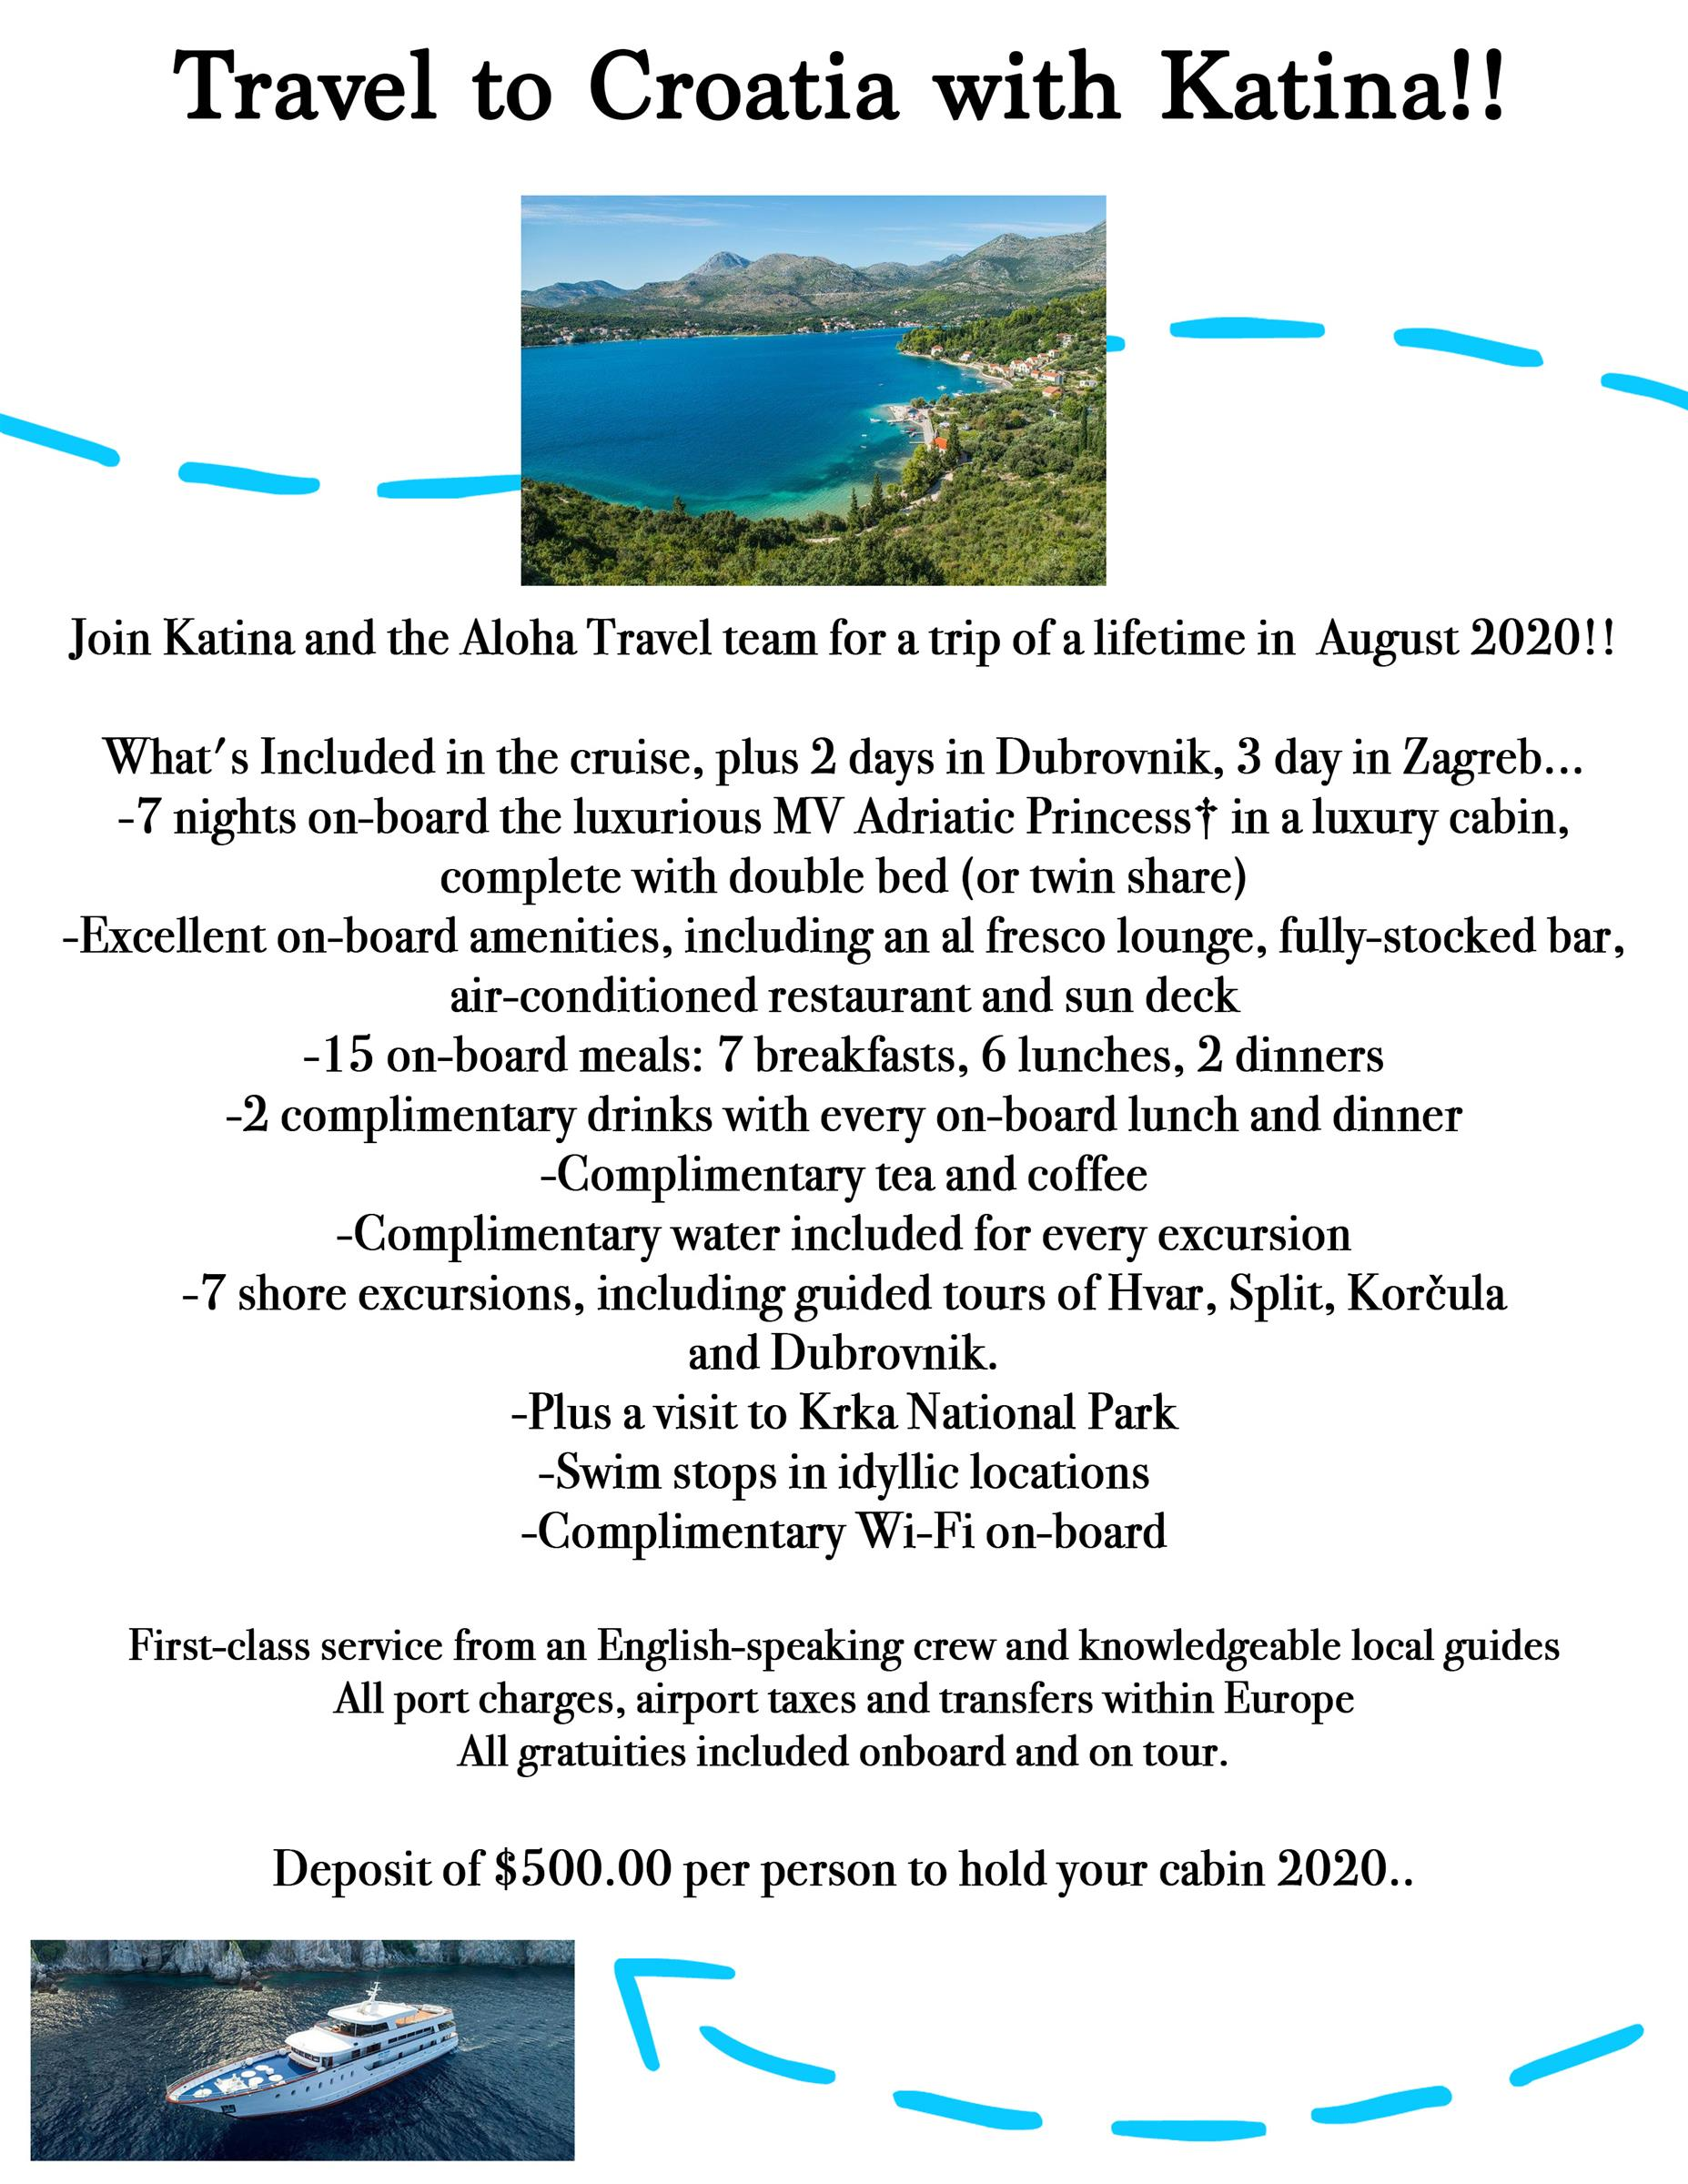 Travel to Croatia with Katina!! Join Katina and the aloha travel team for a trip of a lifetime in August 2020!!  What's included in the cruise, plus 2 days in Dubrovnik, 3 days in Zagreb... 7 nights on board with the luxurious MV Adriatic Princess in a luxury cabin, complete with double bed (or twin share). Excellent on board amenities, including an al fresco lounge, fully stocked bar, air conditioned restaurant and sun deck.  15 on board meals: 7 breakfasts, 6 lunches, 2 dinners. Two complimentary drinks with every on board lunch and dinner. Complimentary tea and coffee. Complimentary water included for every excursion. 7 shore excursions, including guided tours of Hvar, Split, Korcula and Dubrovnik.  Plus a visit to Krka National Park. Swim stops in idyllic locations. Complimentary Wi-Fi on board.  First class service from English speaking crew and knowledgeable local guides.  All port charges, airport taxes and transfers within europe. All gratuities on board and on tour.  Deposit of 500 dollars per person to hold your cabin 2020.